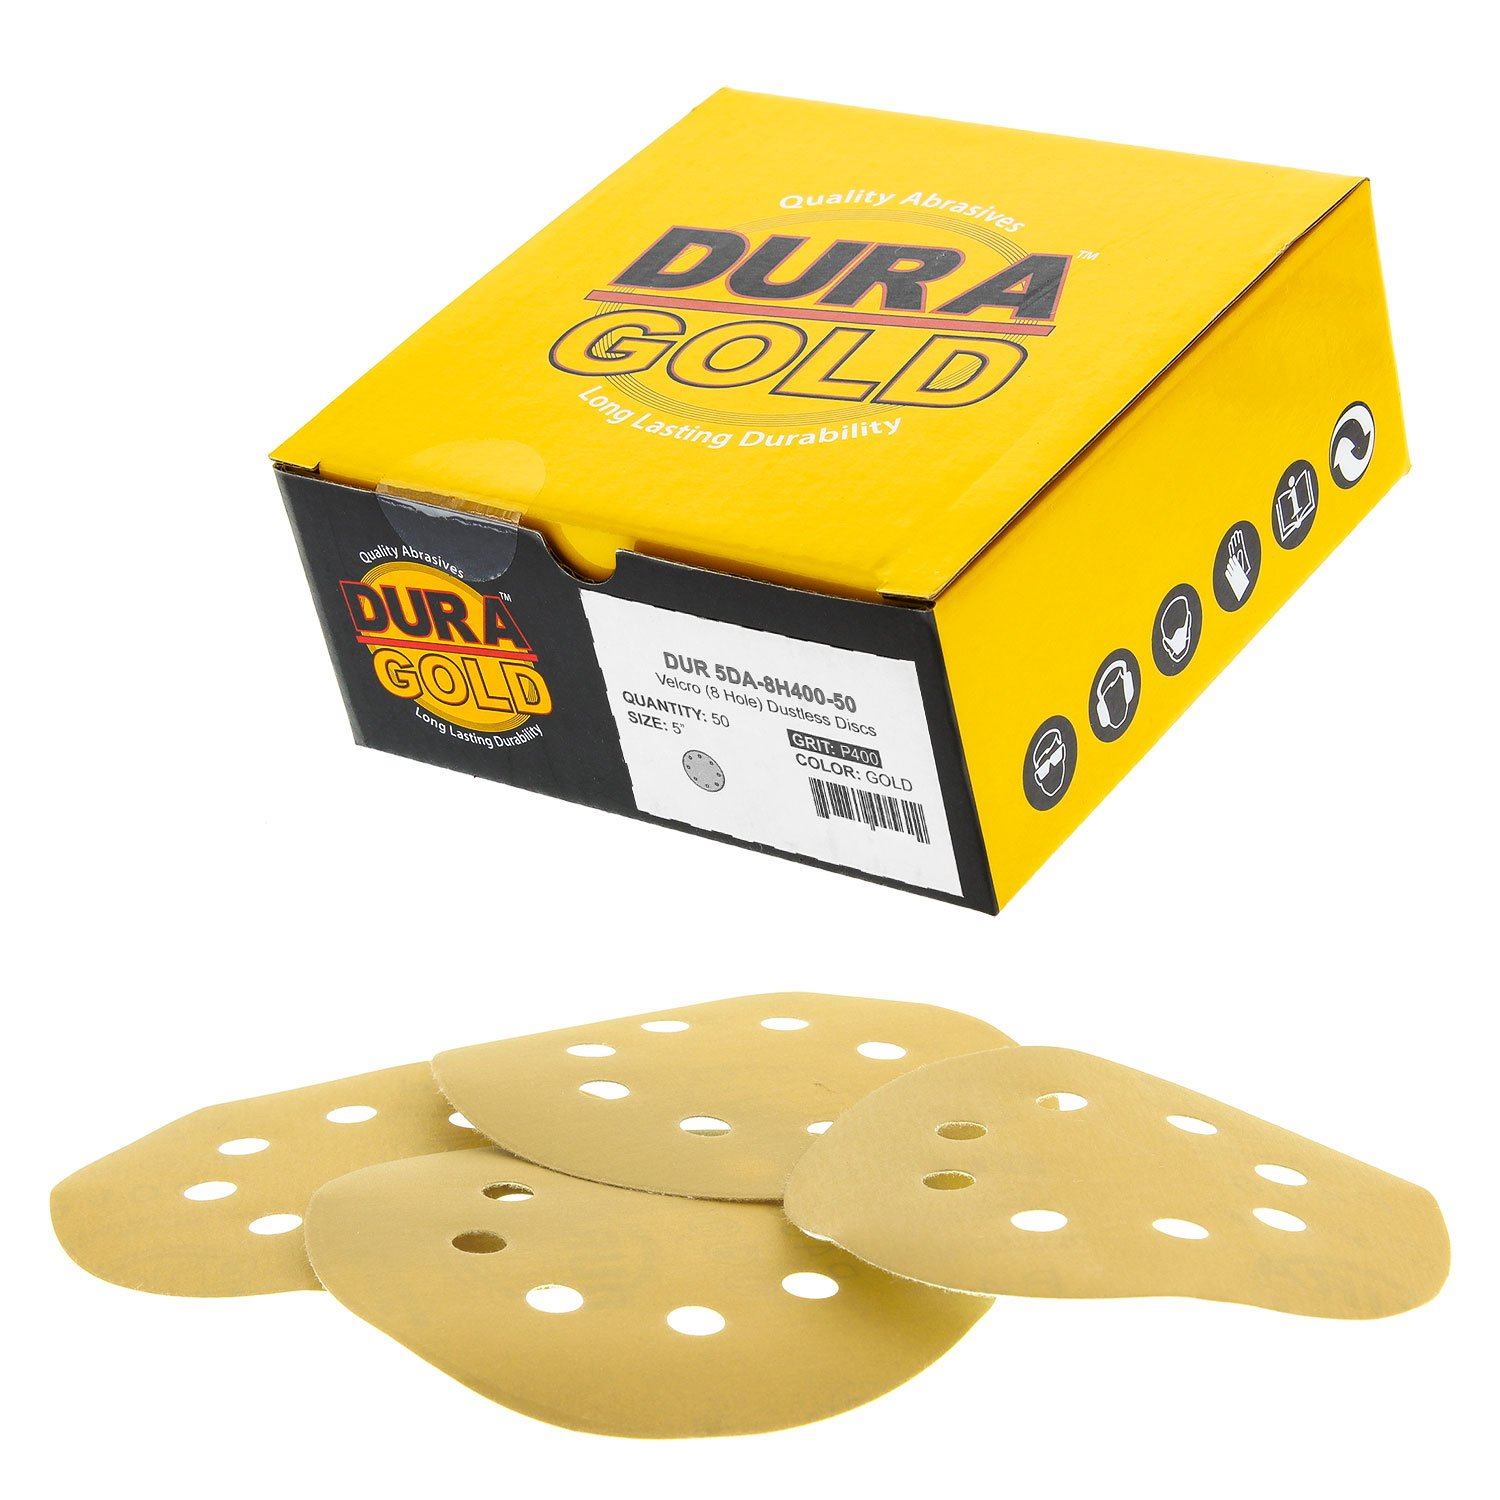 "Dura-Gold Premium - 400 Grit - 5"" Gold Sanding Discs - 8-Hole Dustless Hook and Loop for DA Sander - Box of 50 Finishing Sandpaper Discs for Woodworking or Automotive 71Y8eDmf8vL"